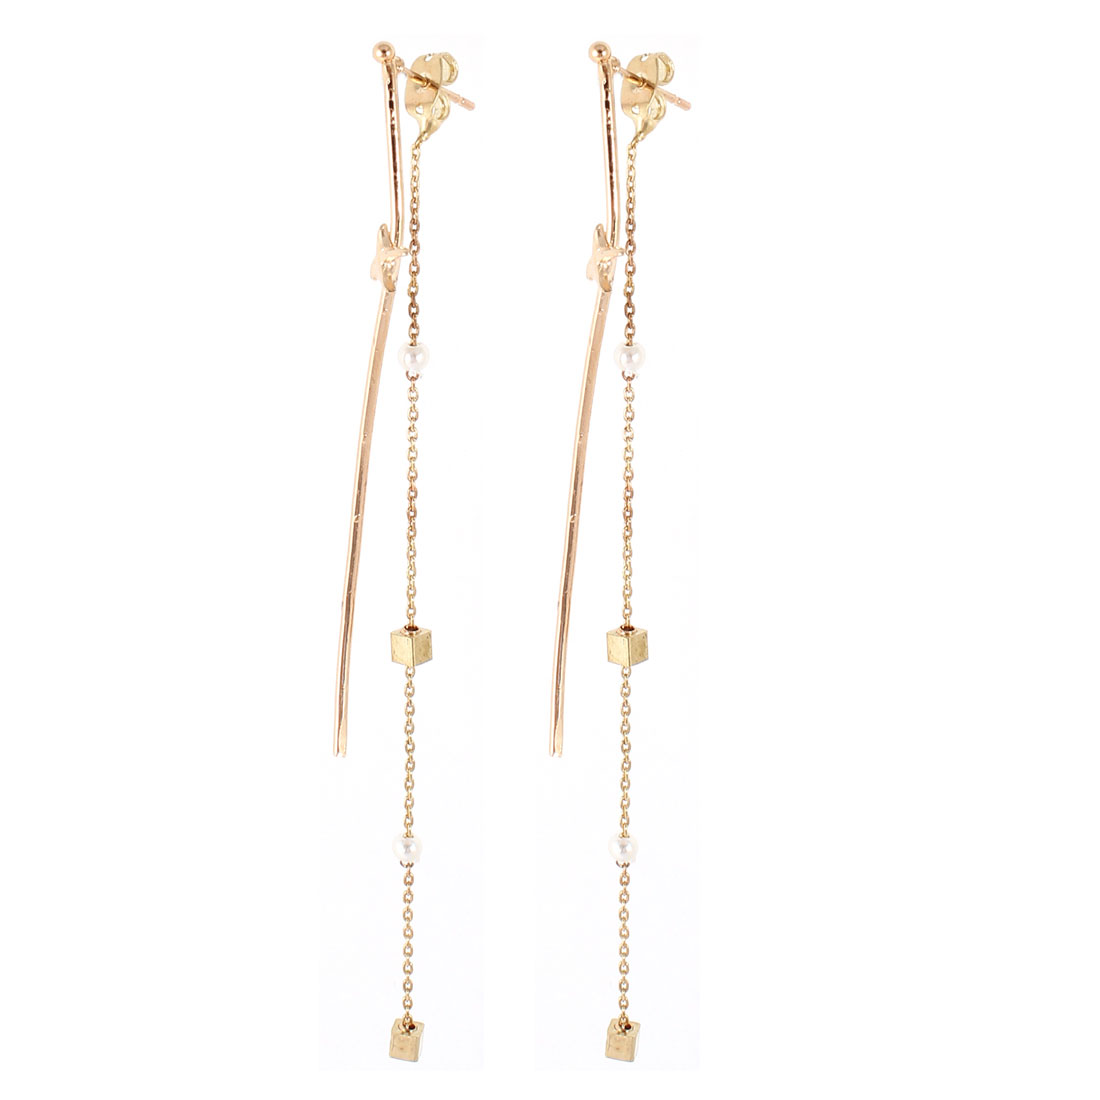 Woman Gold Tone Round Beads Ornament Ear Stud Earrings Eardrop Pair